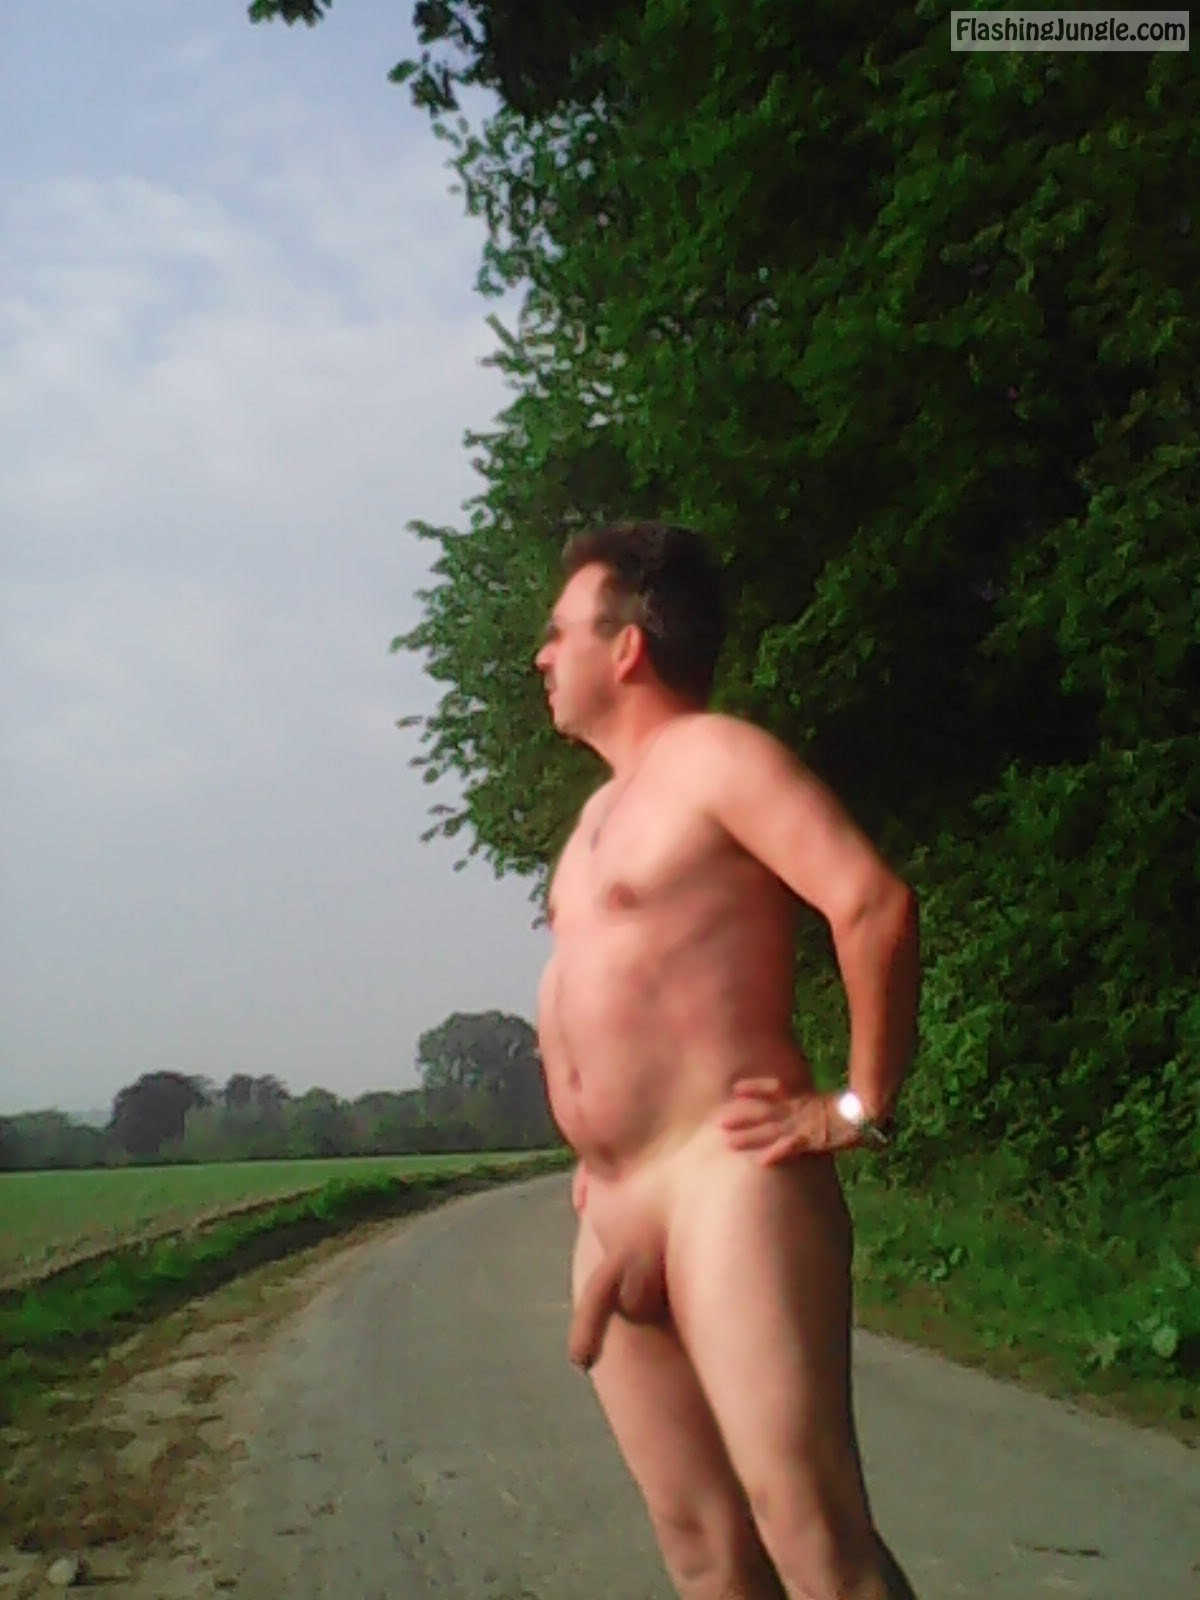 Mature man flashing long dick on the road real nudity dick flash